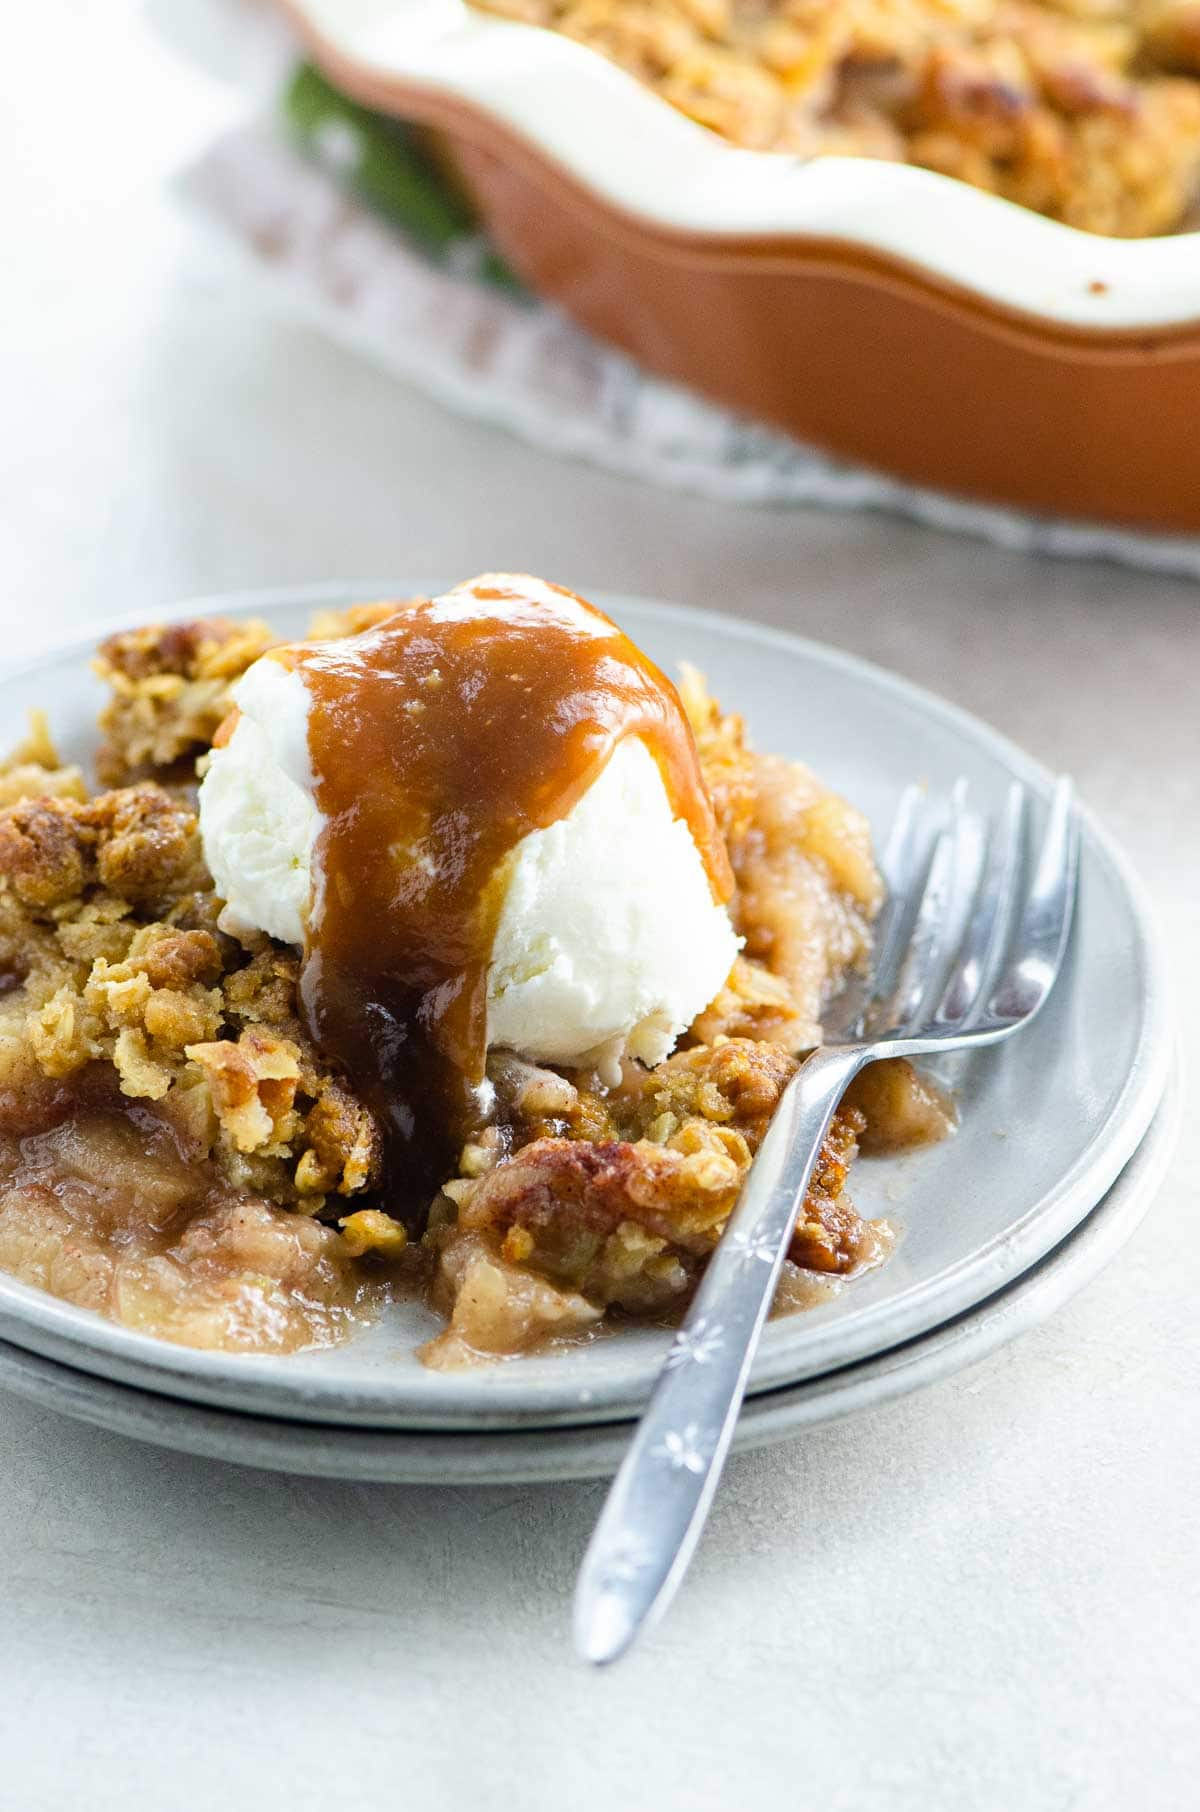 Best Old Fashioned Apple Crisp Recipe with ice cream and caramel sauce